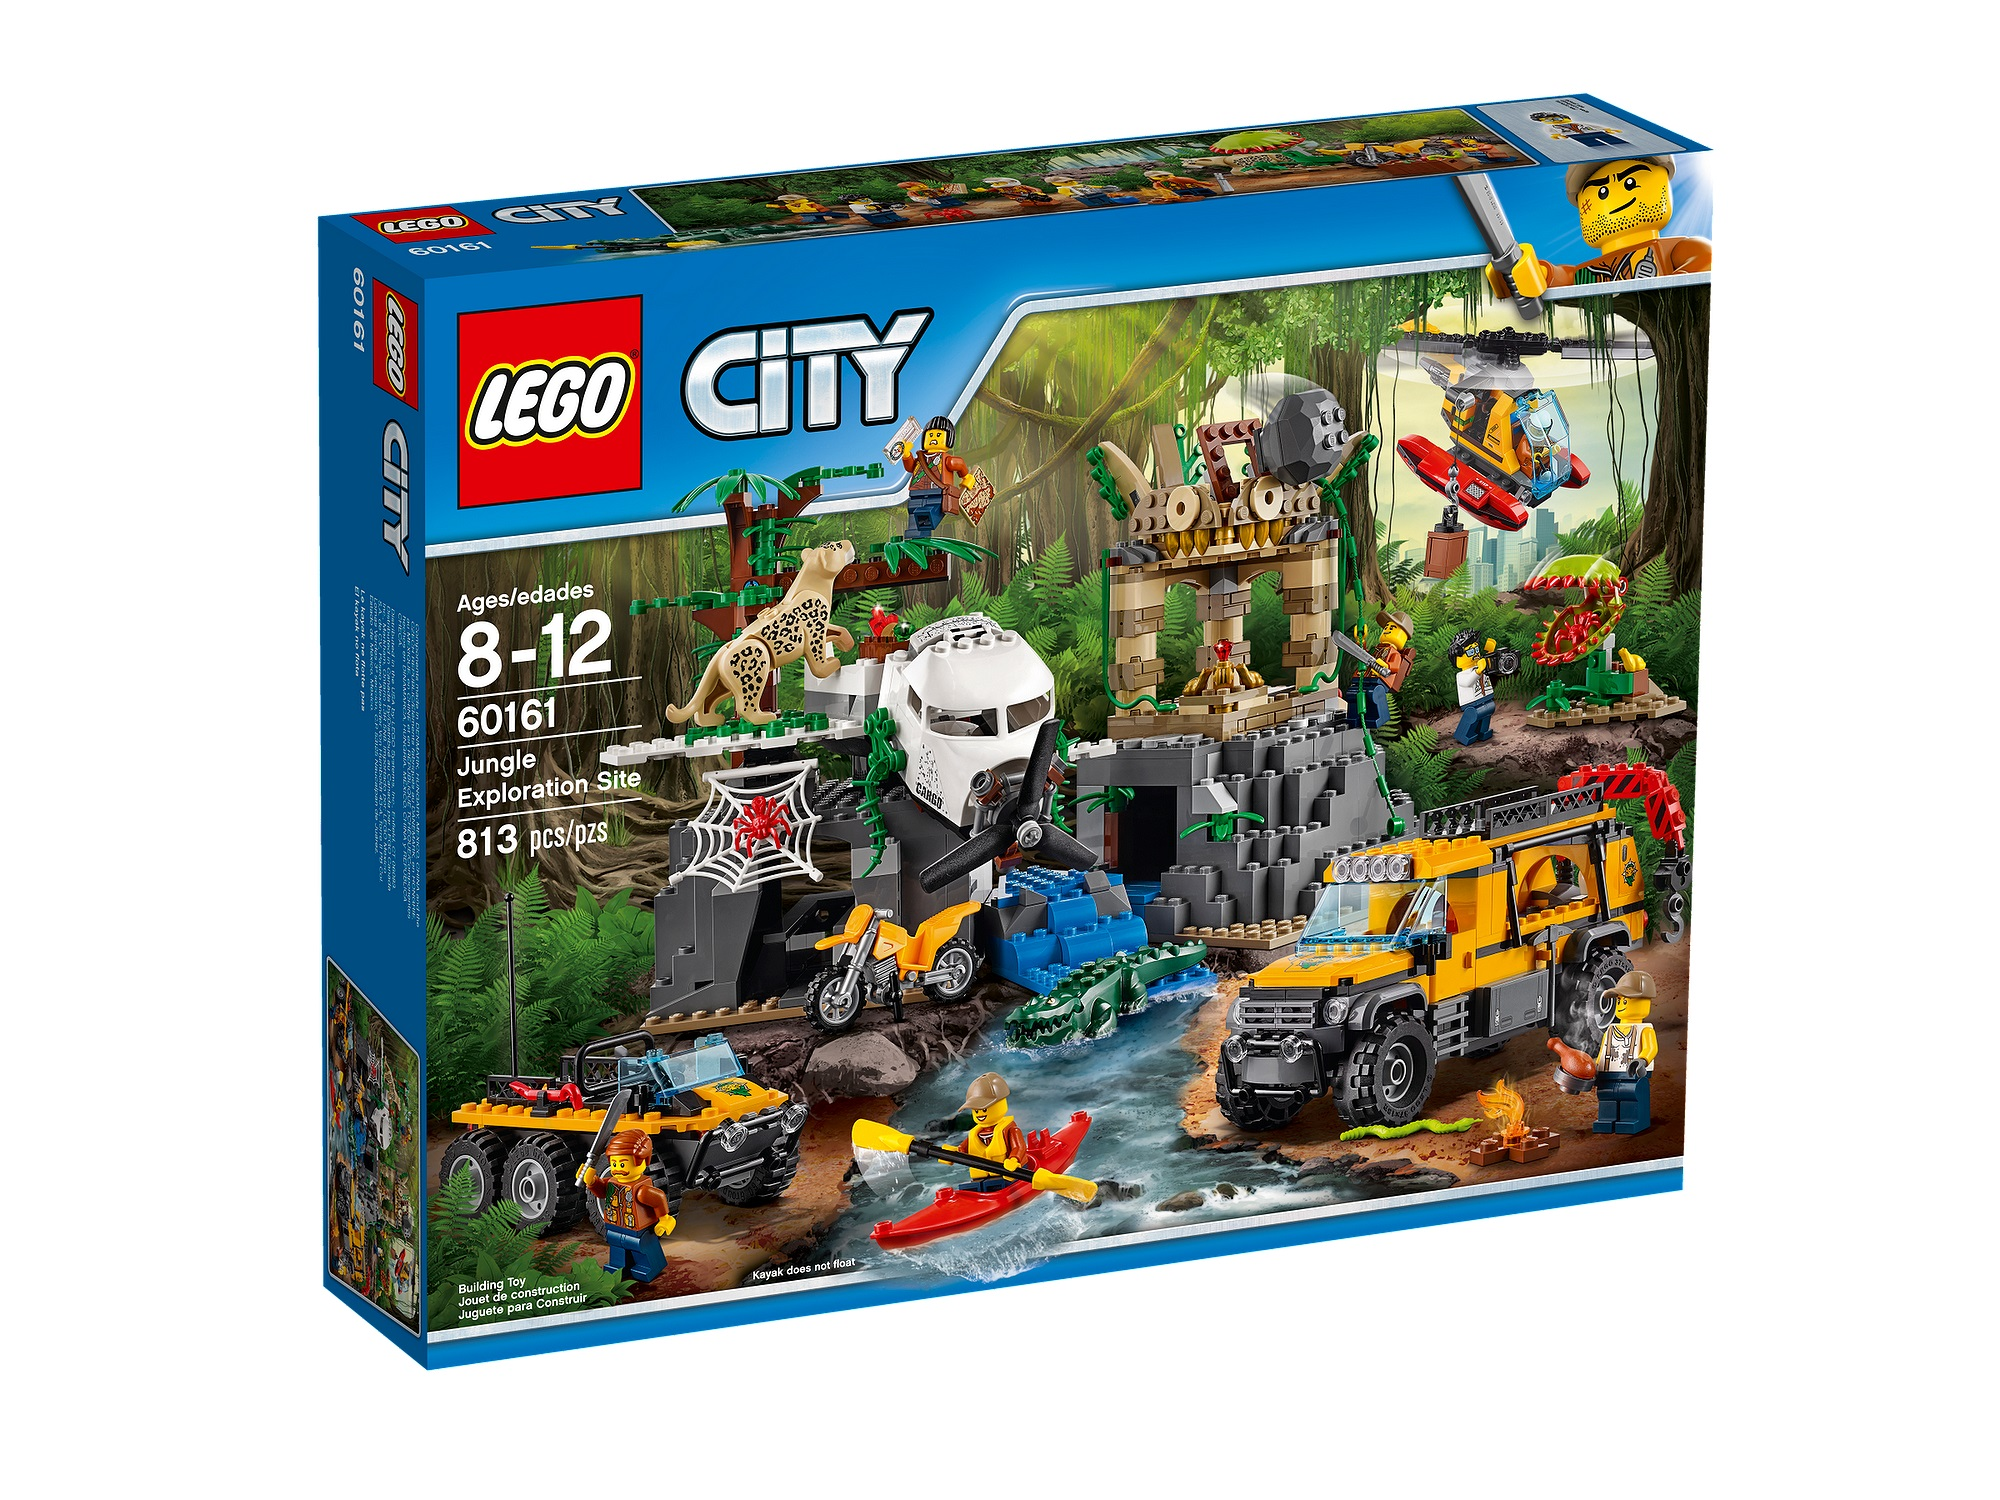 helicopter colouring pages with Preview Lego City Jungle 2017 Sets on Therapist additionally Coloriage H C3 A9licopt C3 A8re Militaire De Lavenir as well B001CQPS6M likewise Dla Chlopcow Kolorowanka Wojsko 47 in addition Airplane Color Page In Cute Types.